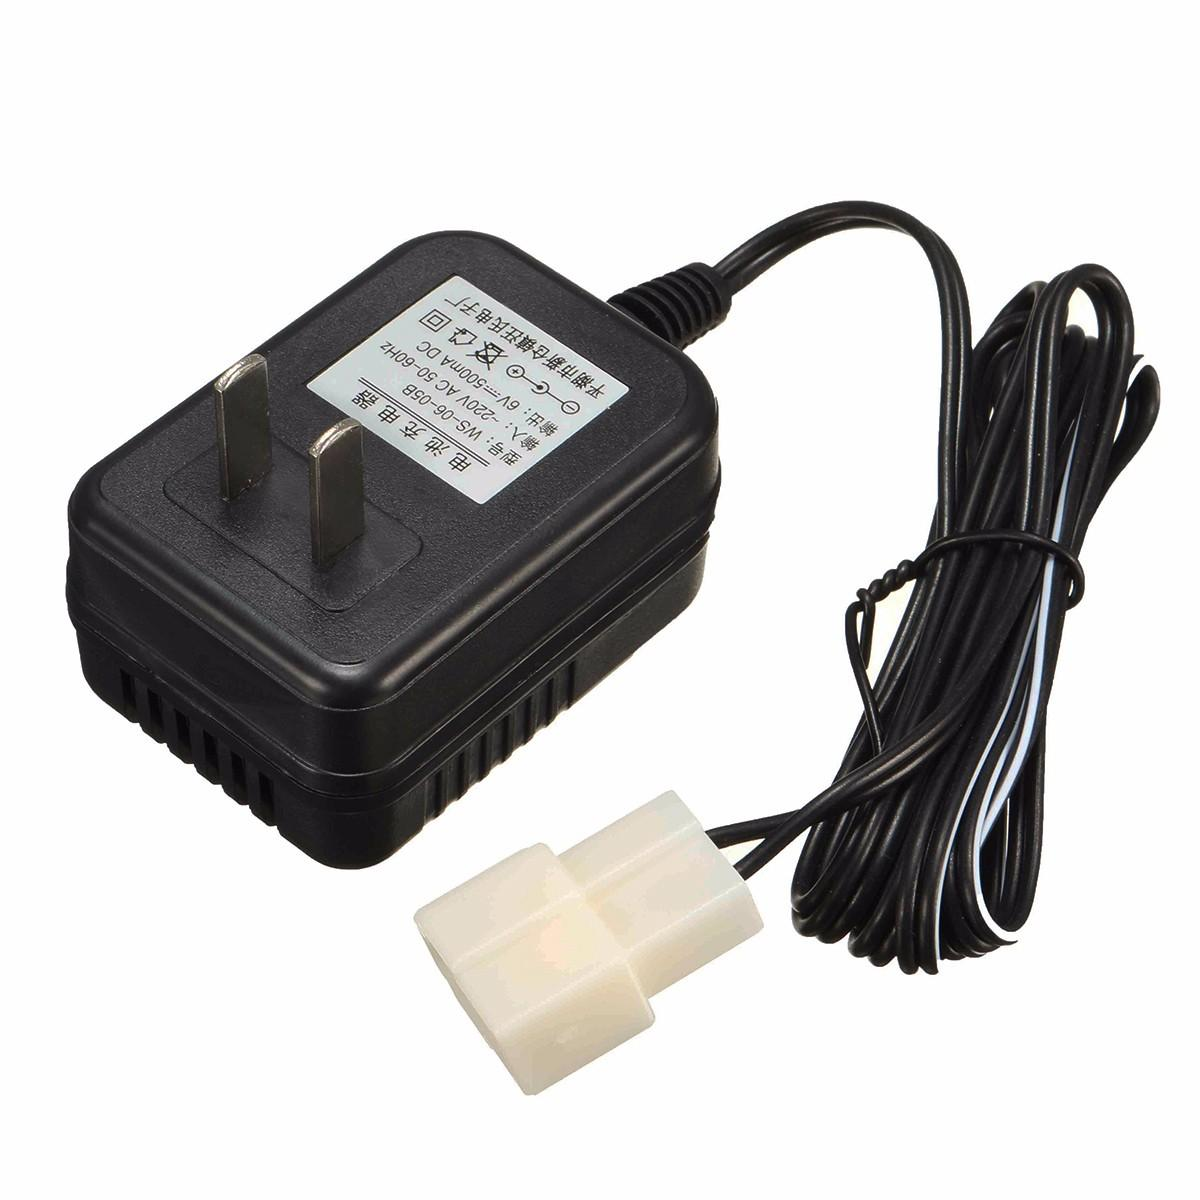 Wall Charger AC Adapter for KID TRAX ATV Quad 6V Battery Powered Ride